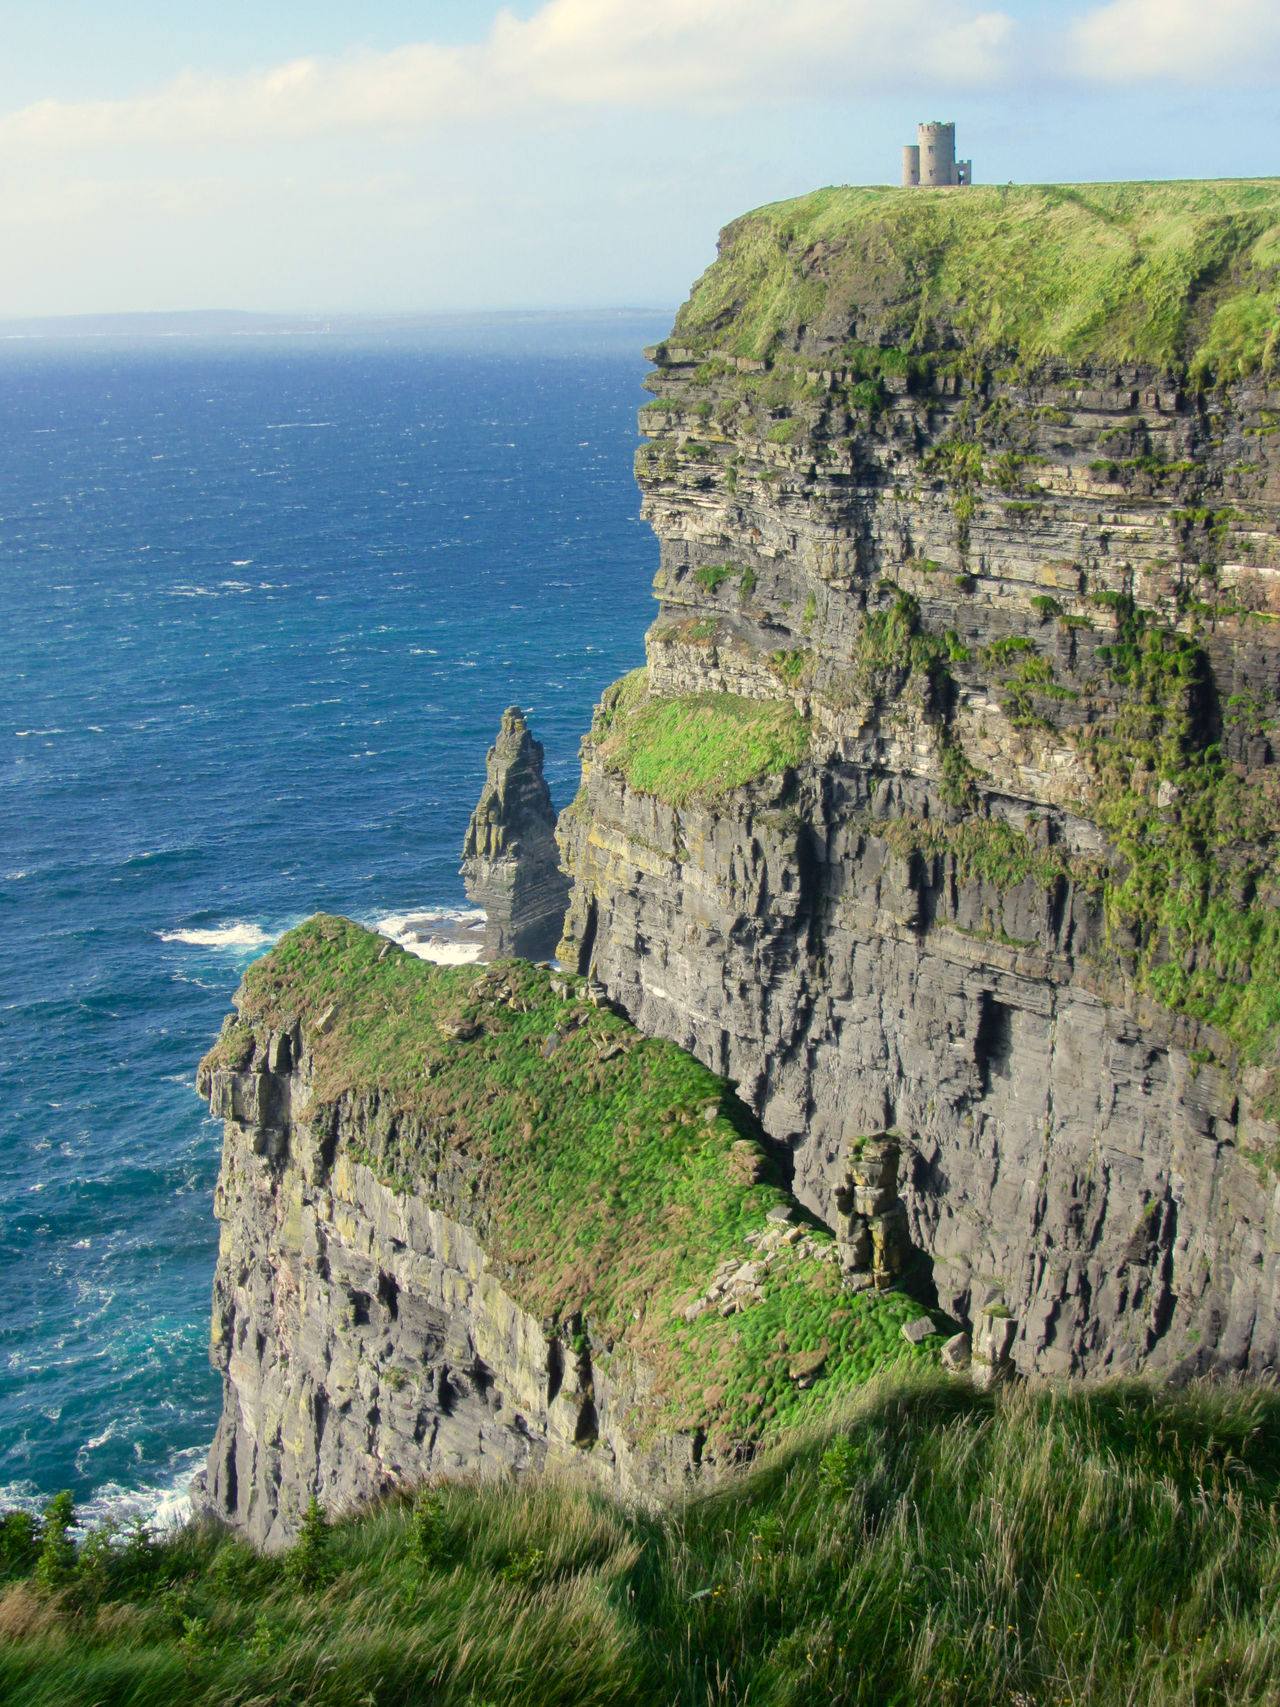 Atlantic Ocean Castle Cliff Cliffs Of Moher  Clouds Geology Grass Moss Nature Landscapes Ireland Outdoors Ocean View Physical Geography Rock Rock Formation Rocks Rough Sightseeing Sky Stone Tower Travel Photography Traveling Landscapes With WhiteWall